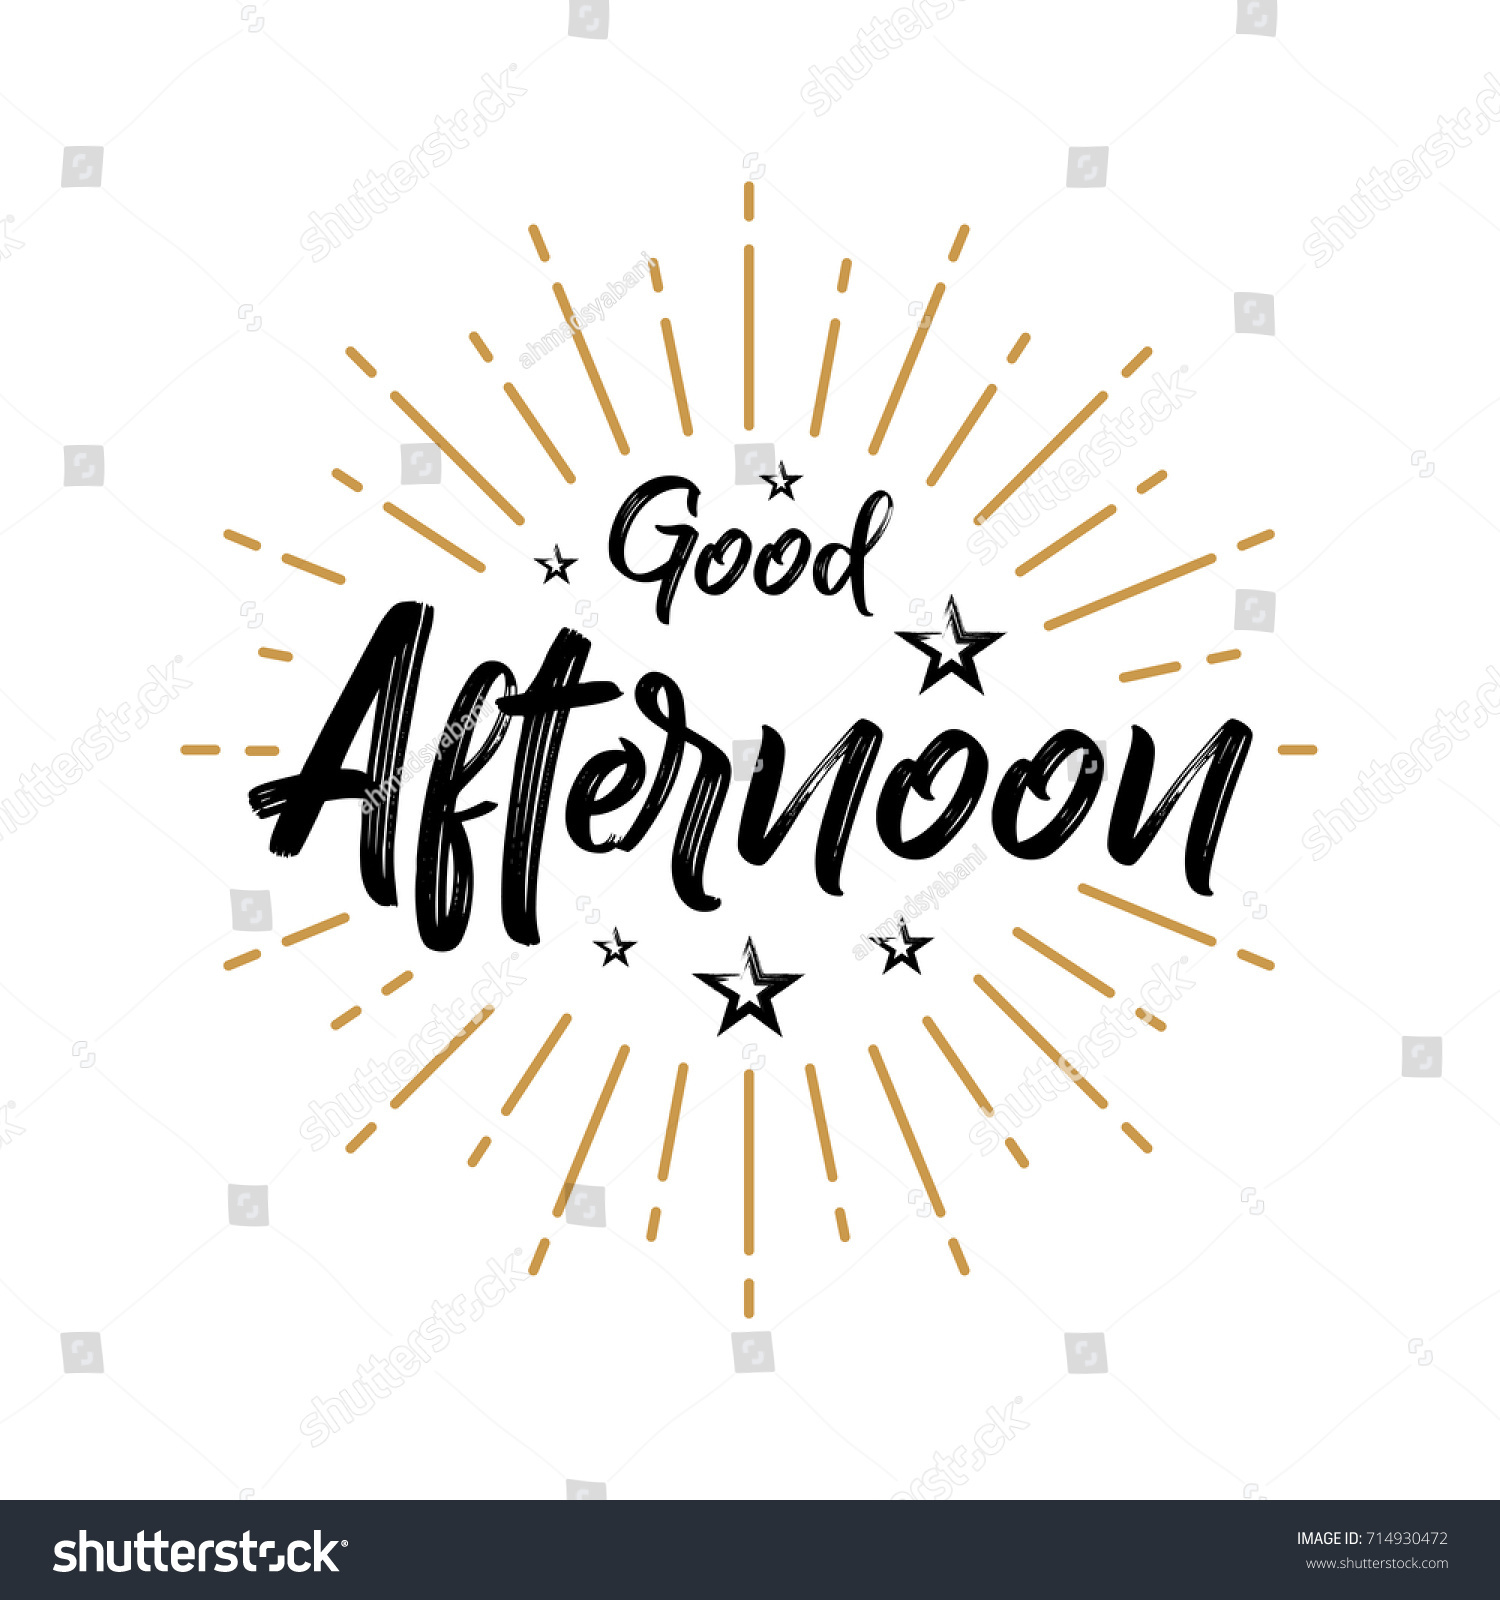 Good Afternoon Fireworks Today Day Lettering Stock Vector 714930472